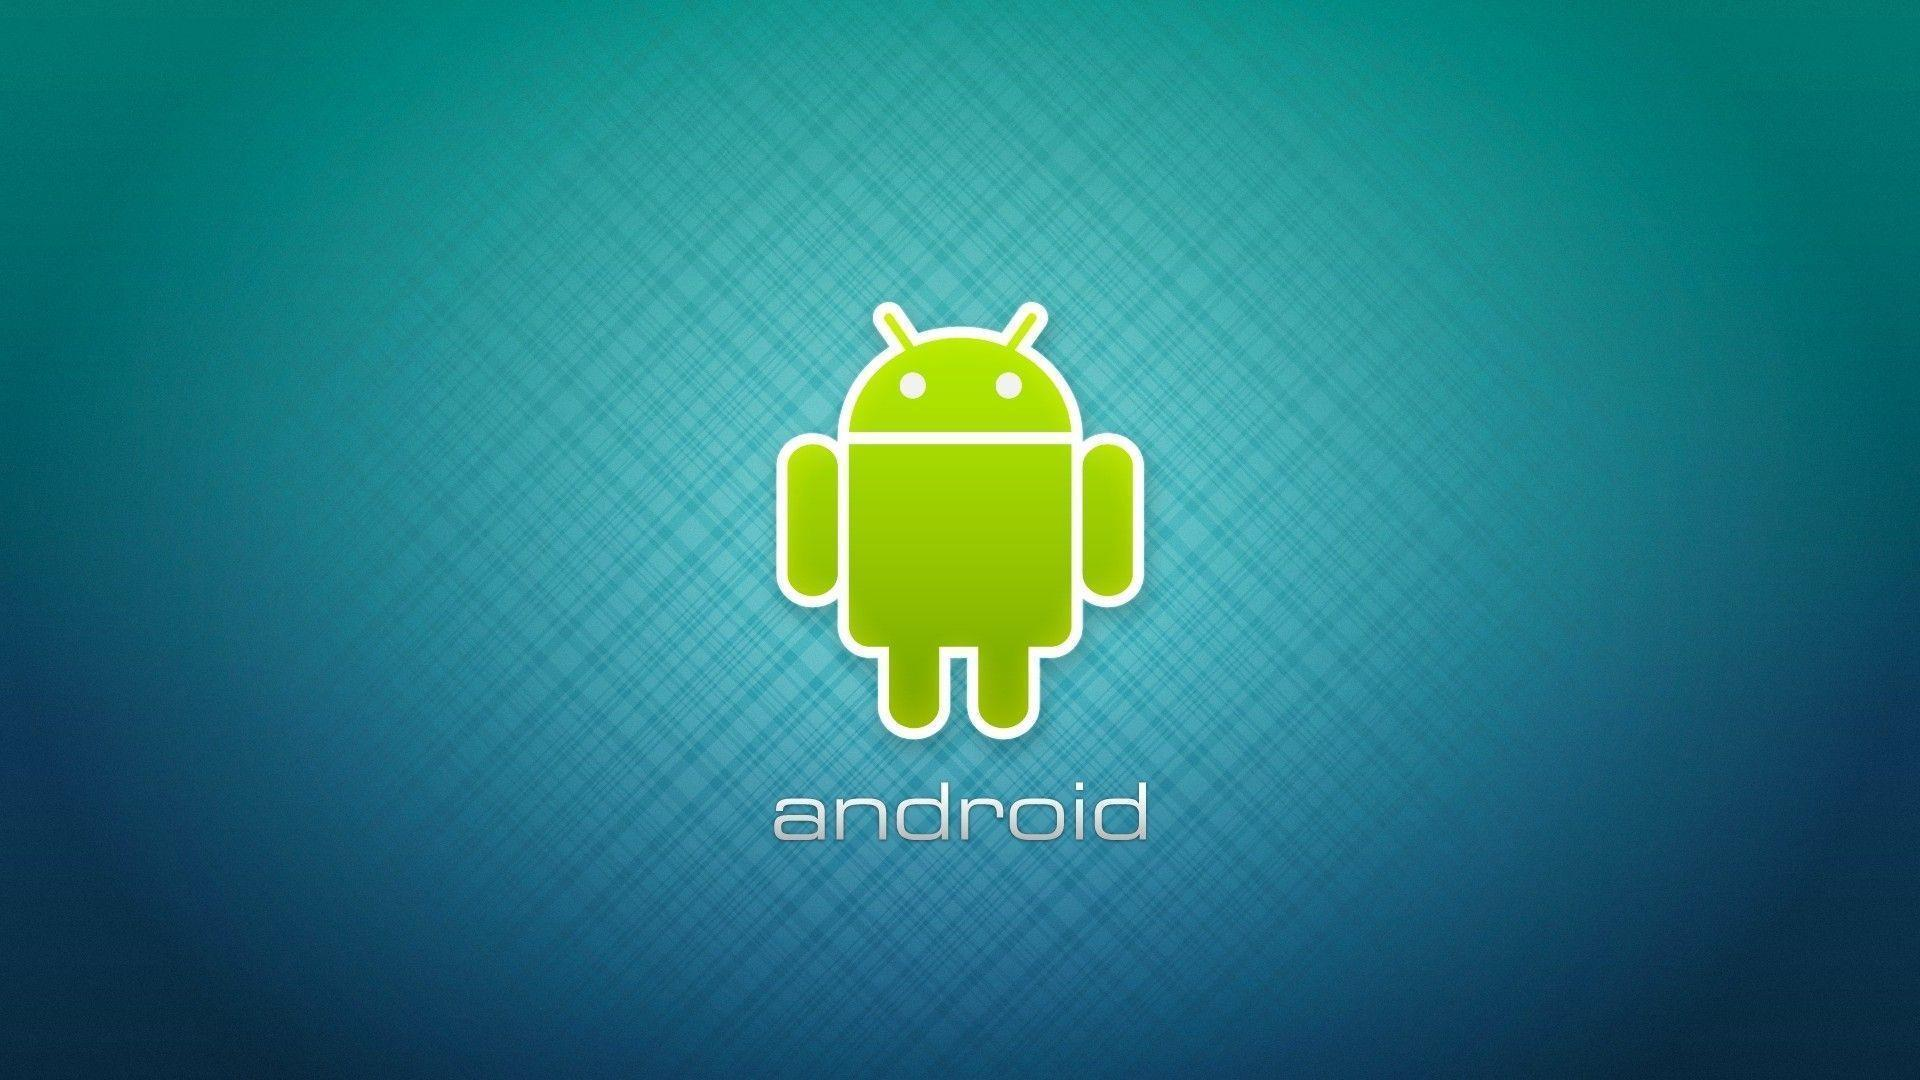 Android Logo Wallpapers